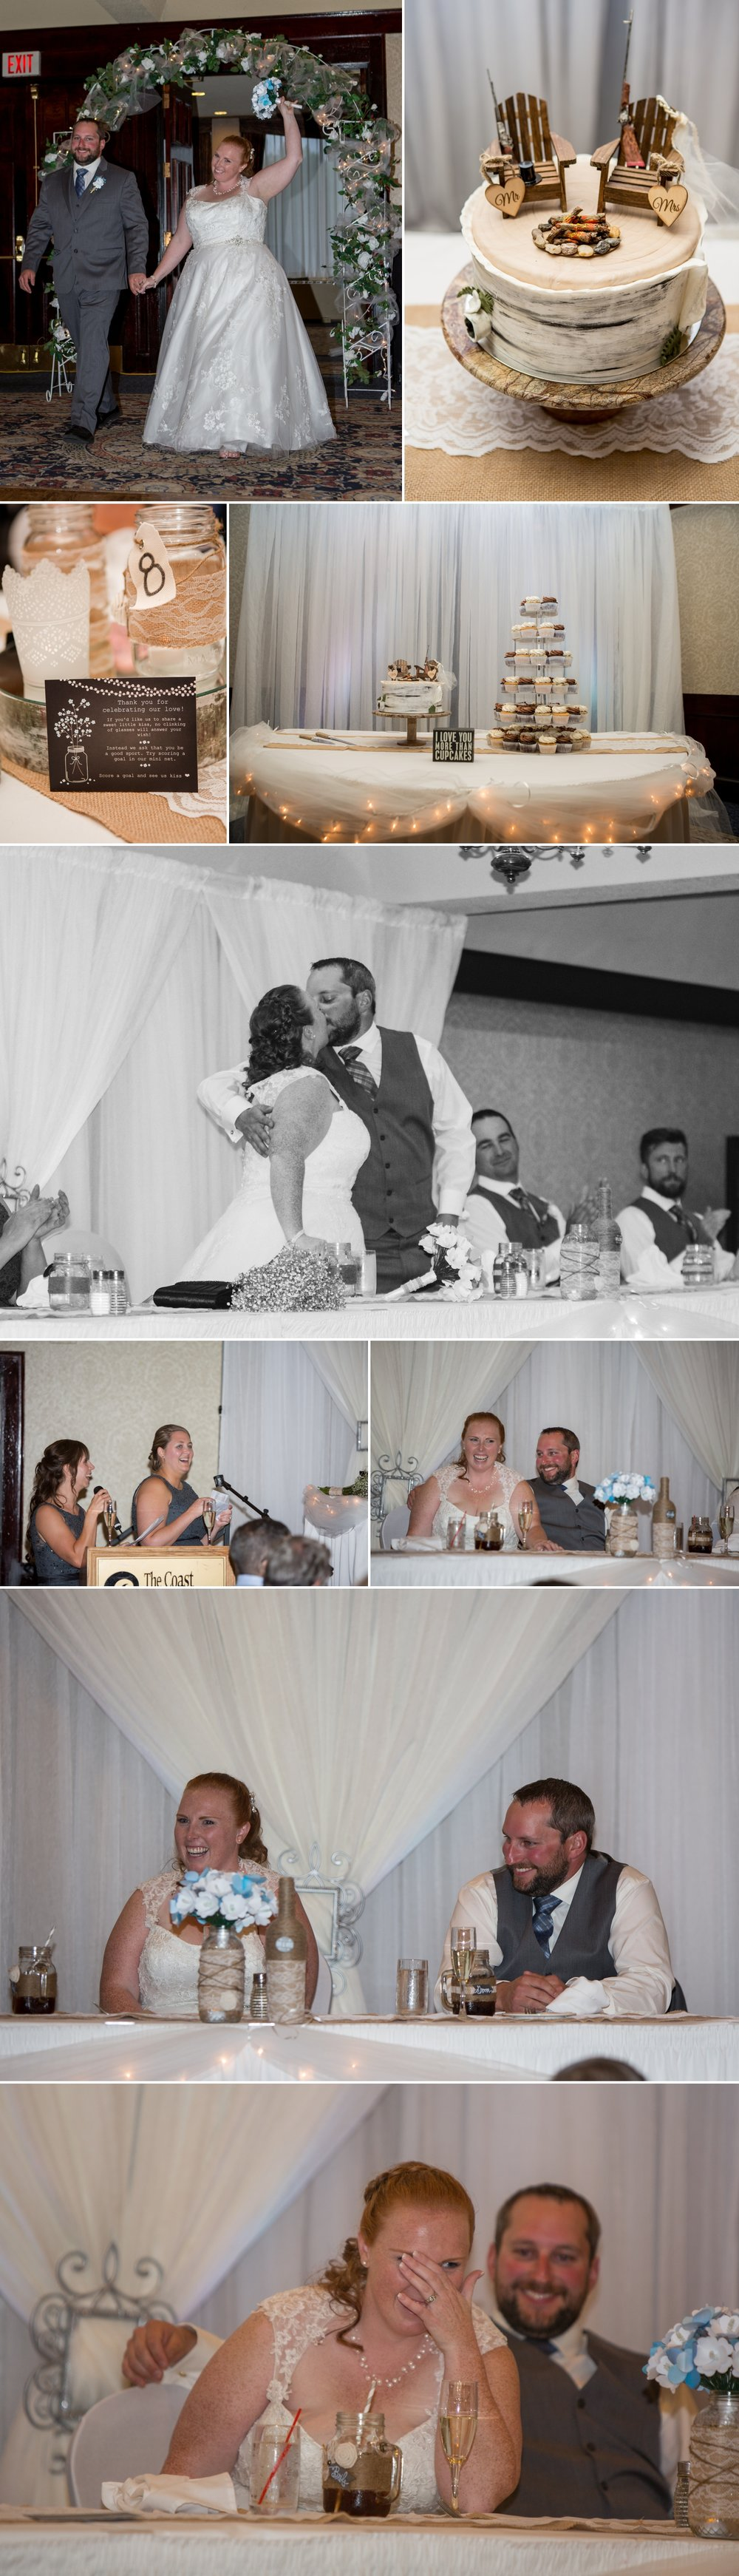 Rob and Kyla - wedding blog 16.jpg